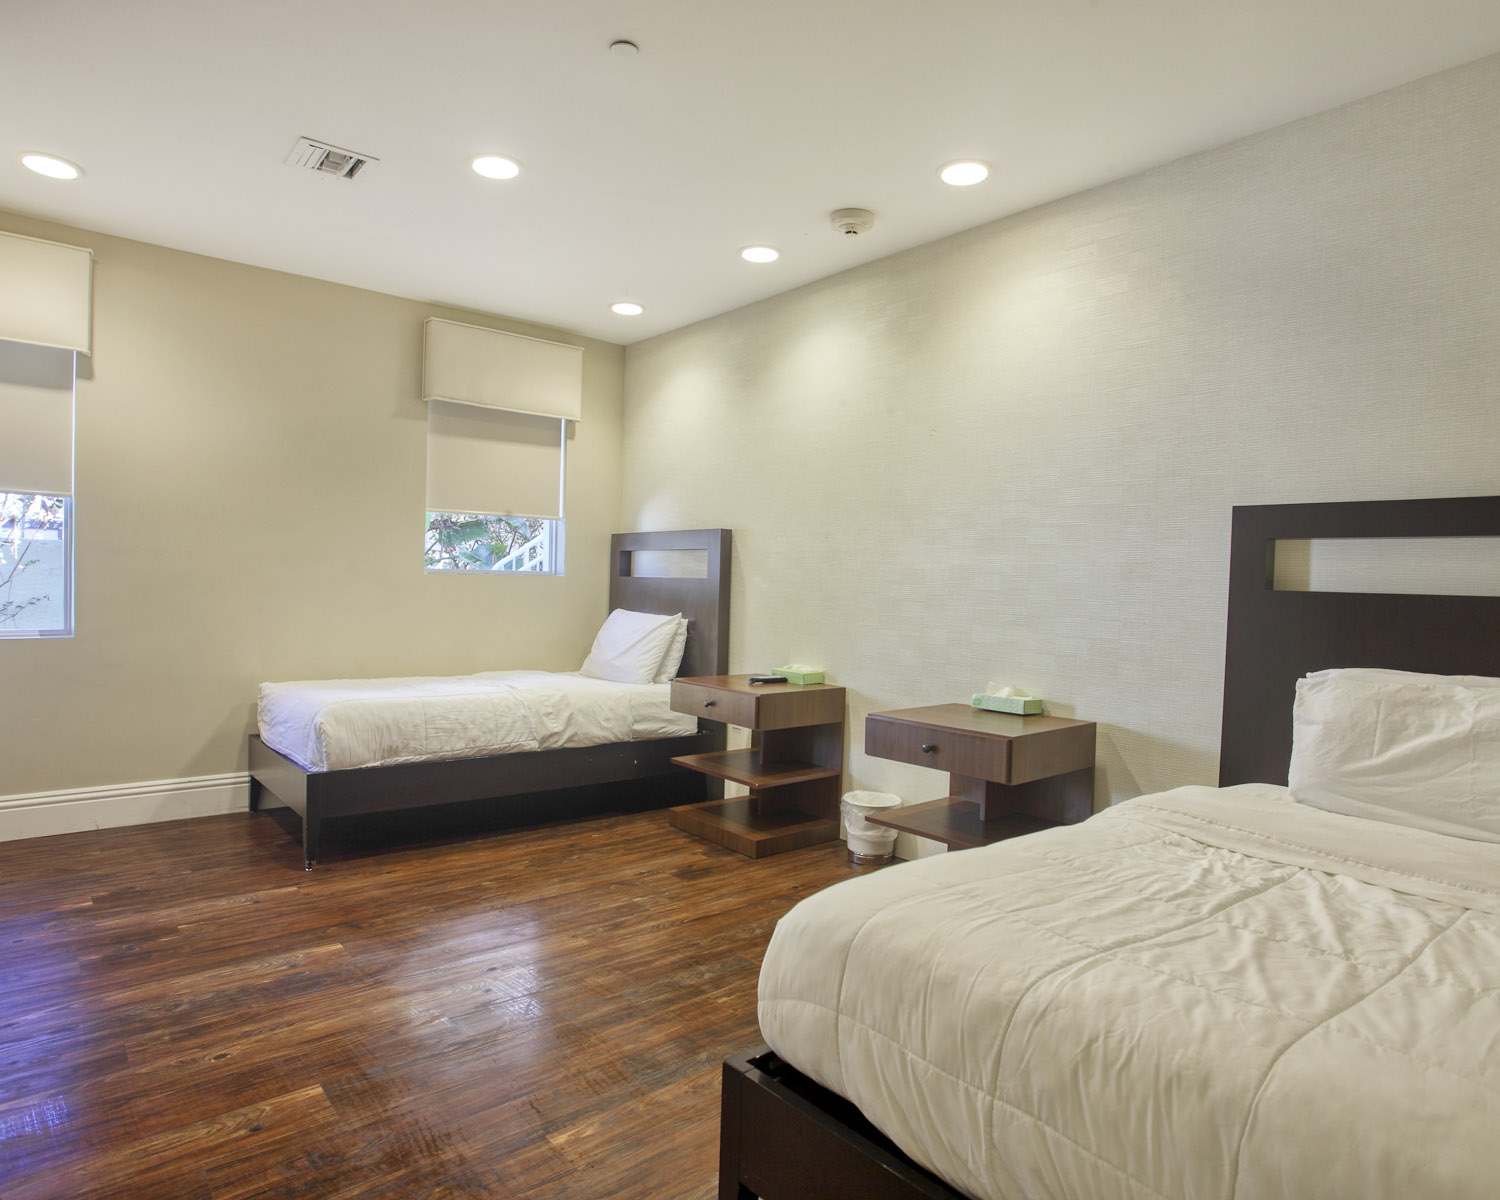 Fort Lauderdale detox center image 38 single rooms or double or private rooms are all possible